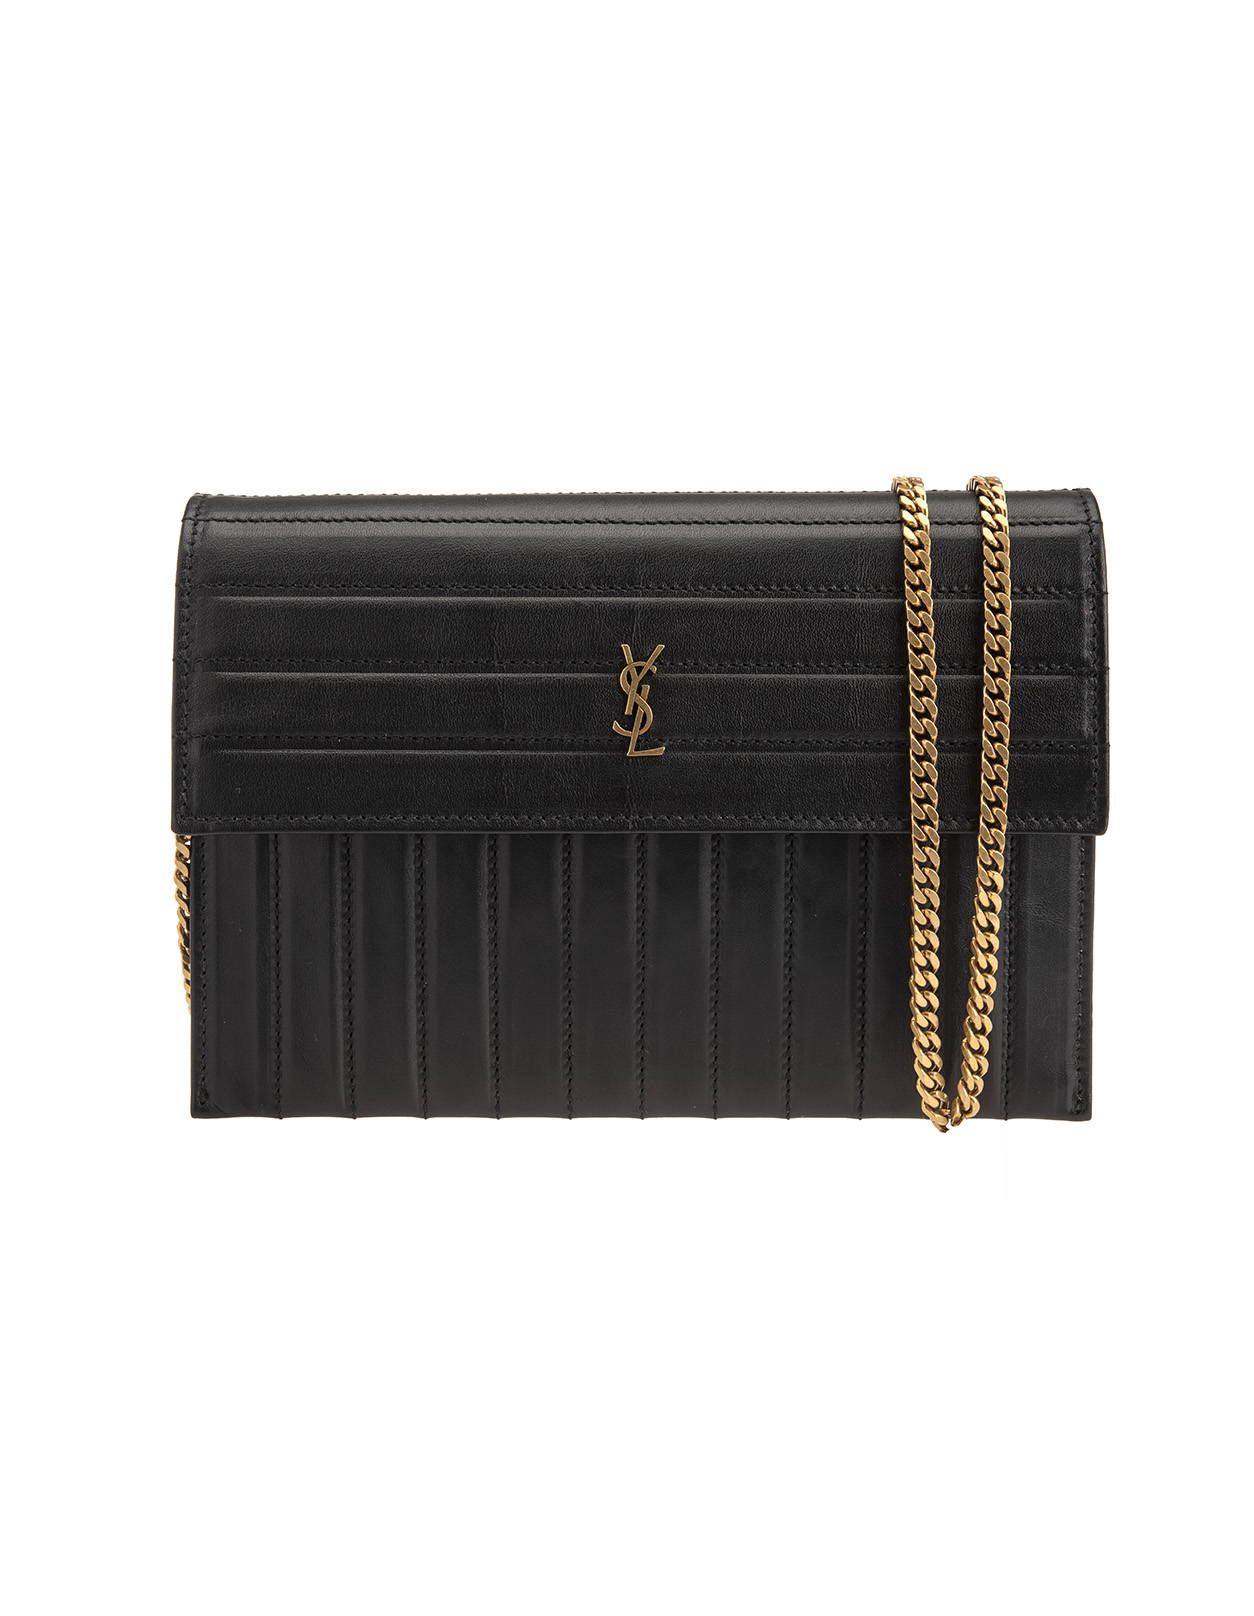 ba477d2ef1de Black Victoire Quilted-Leather Crossbody Bag - SAINT LAURENT - Russocapri